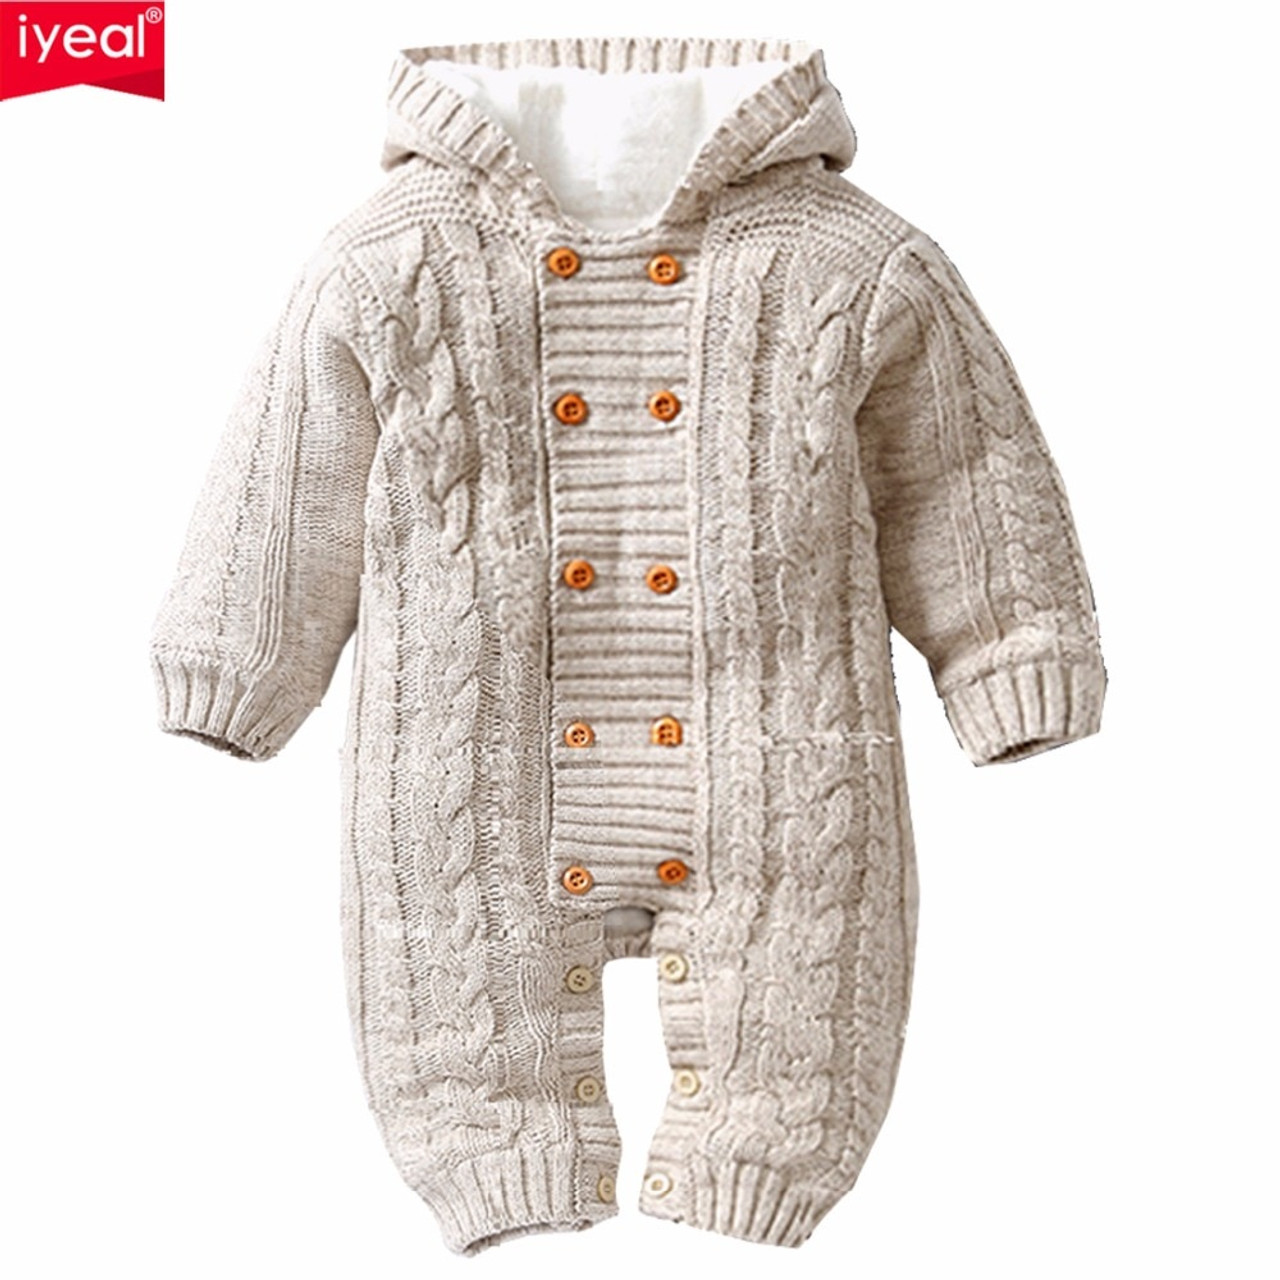 Toddler Baby Boys Girl Fur Collar Hooded Knitted Tops Warm Coat Clothes Outfit Sets